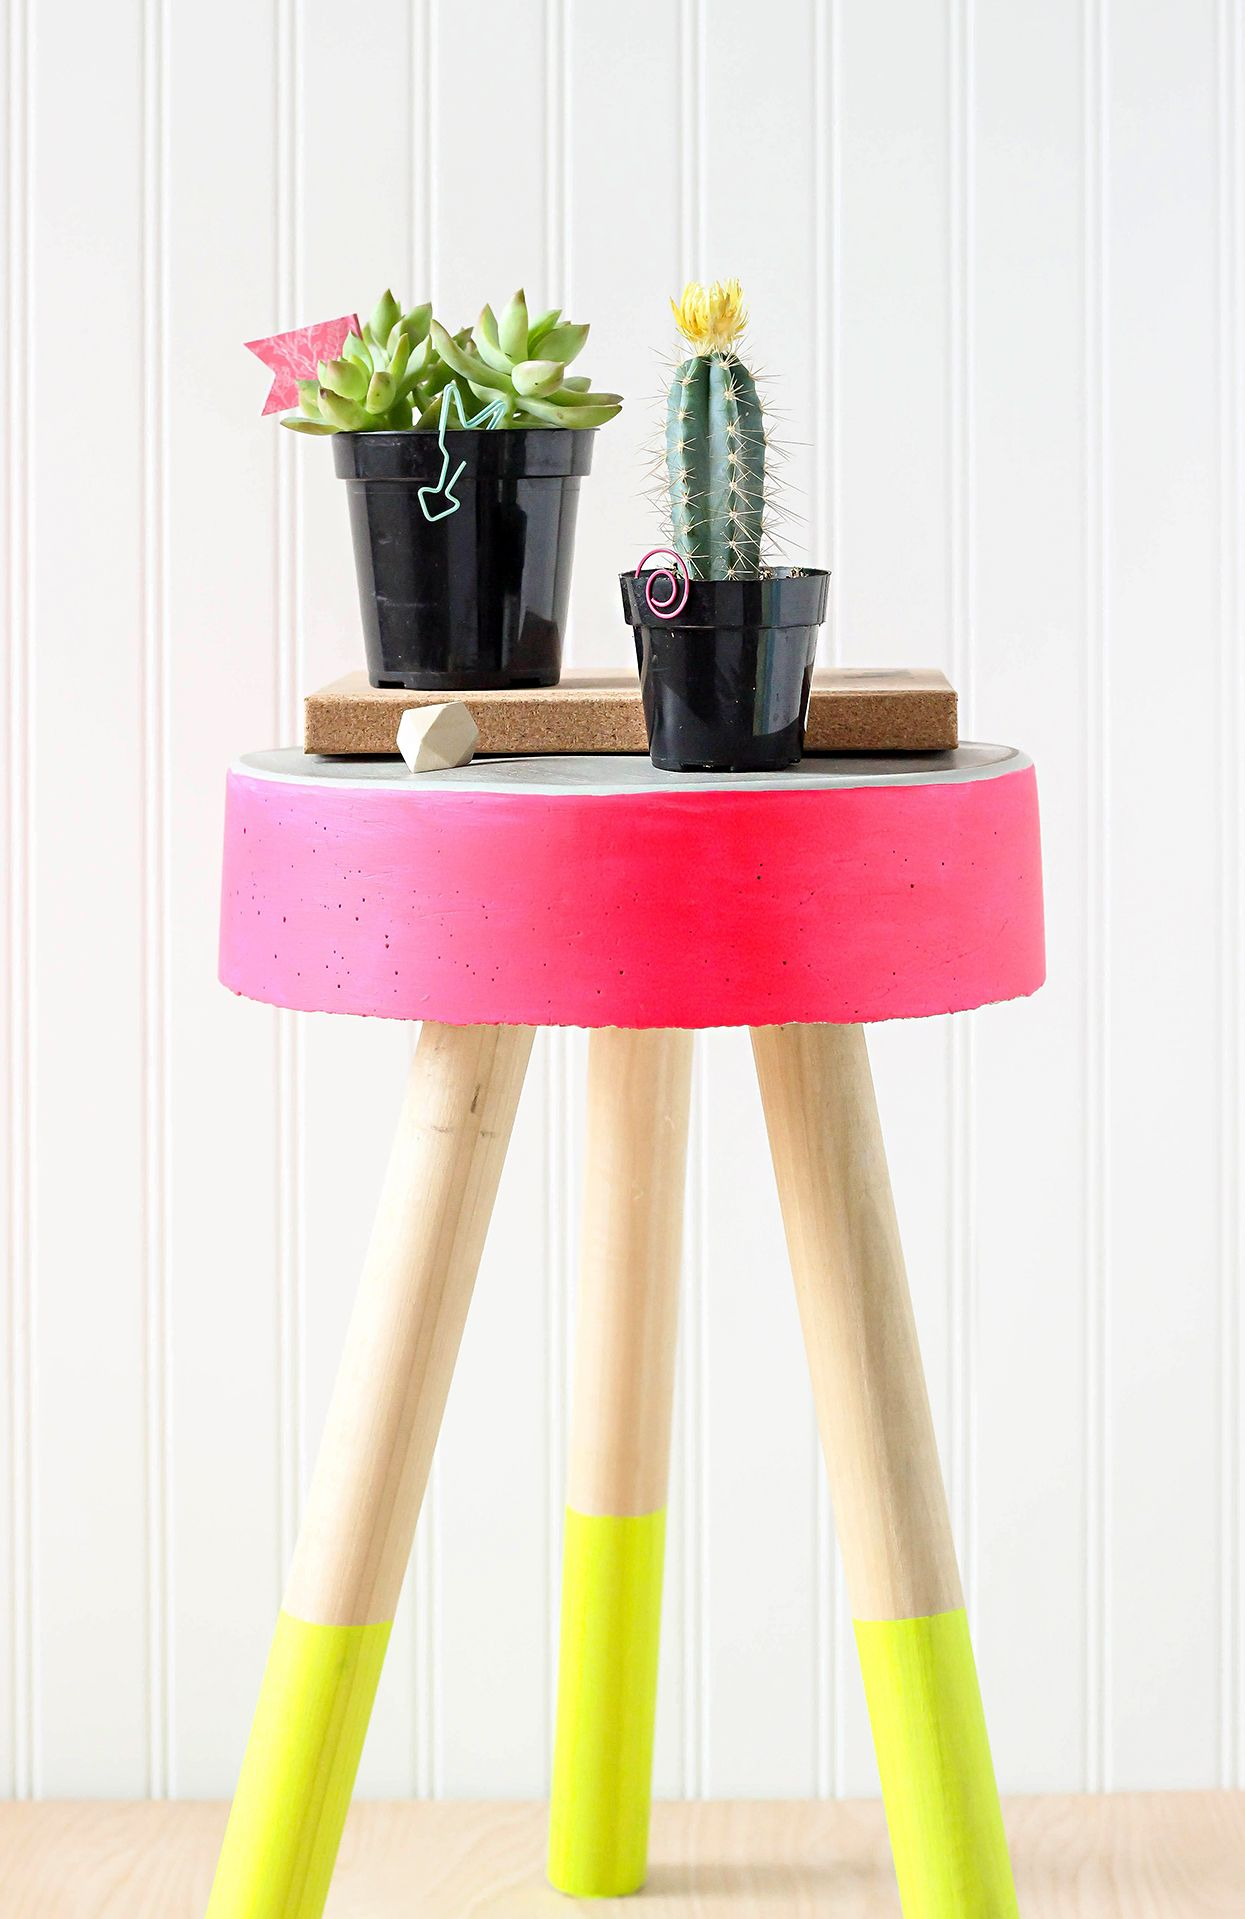 3f9898e21562 19 Summer DIY Projects That Will Brighten Your Home